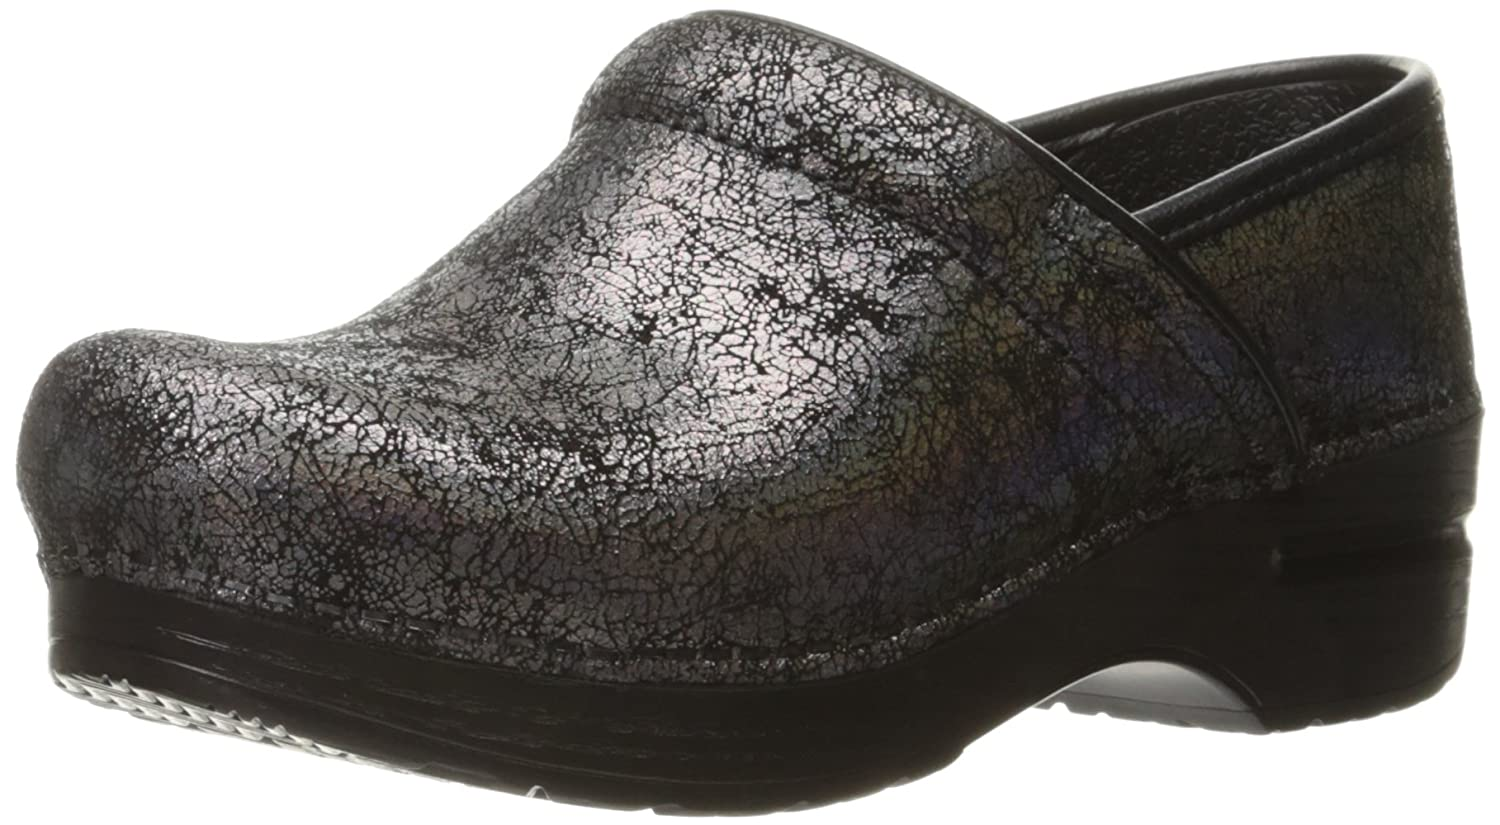 [ダンスコ]dansko フラットシューズ Professional B019YPBSWU 37 M EU / 6.5-7 B(M) US|Stained Glass Stained Glass 37 M EU / 6.5-7 B(M) US